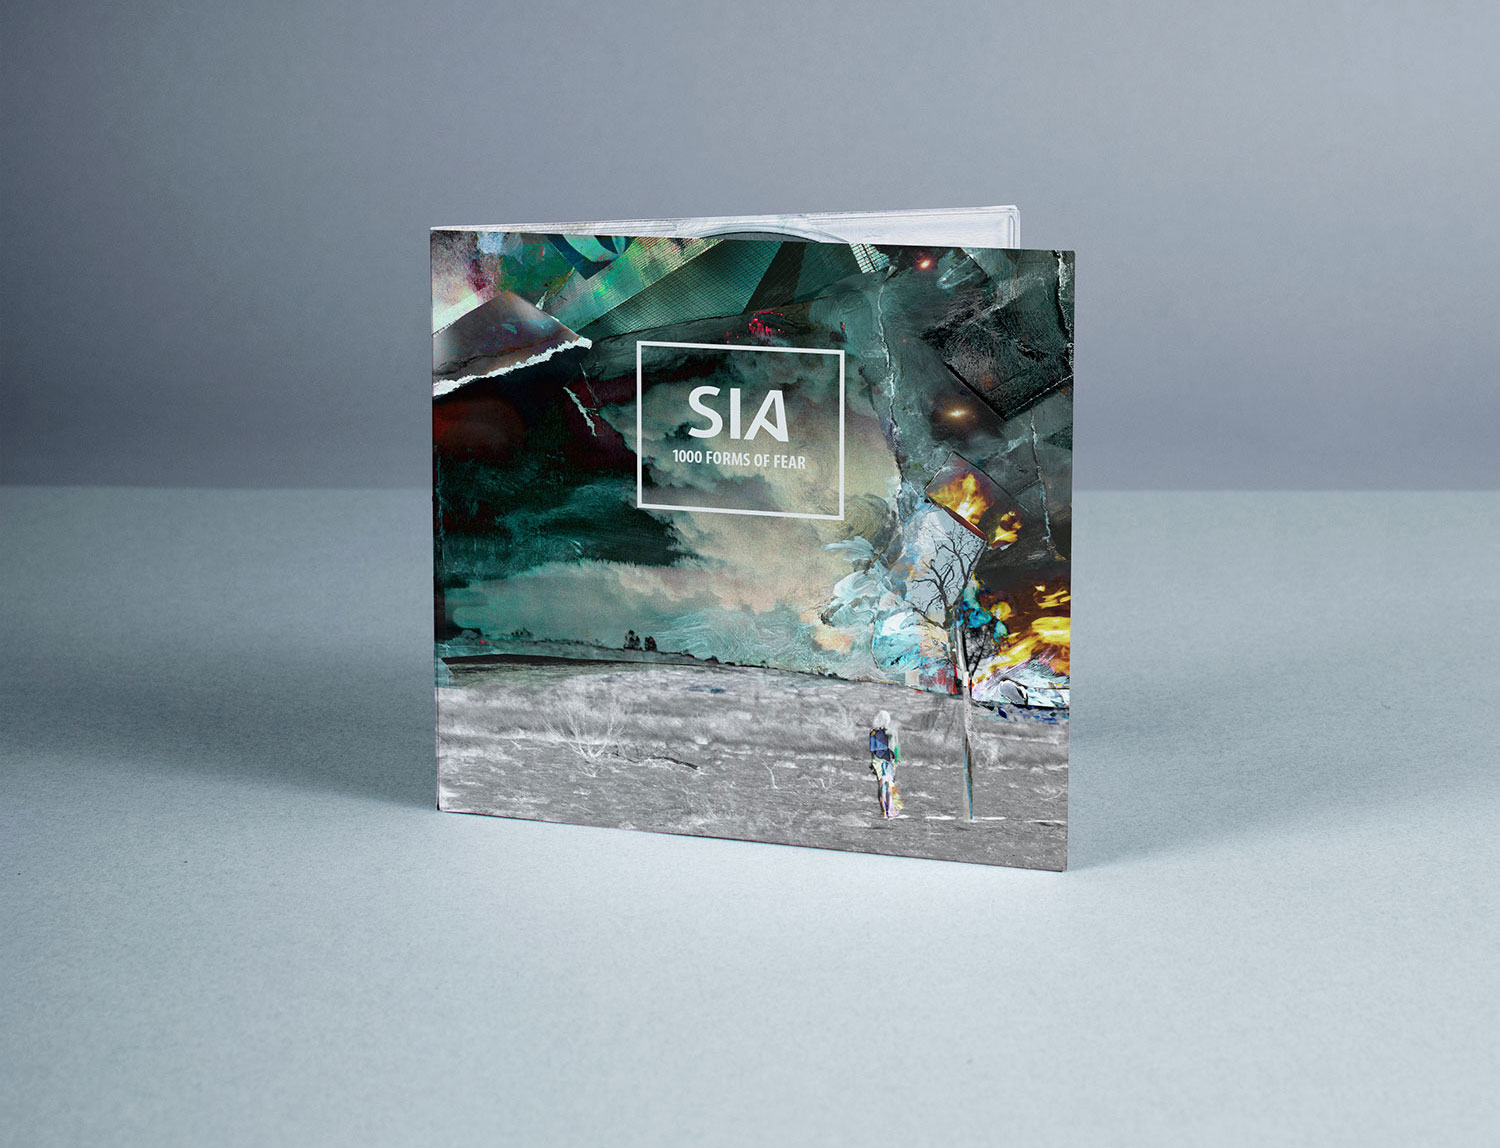 Graphic design CD cover of Sia's Chandelier album 1000 forms of fear, features modern mixed media collage landscape with burning tree and ghostly figure.